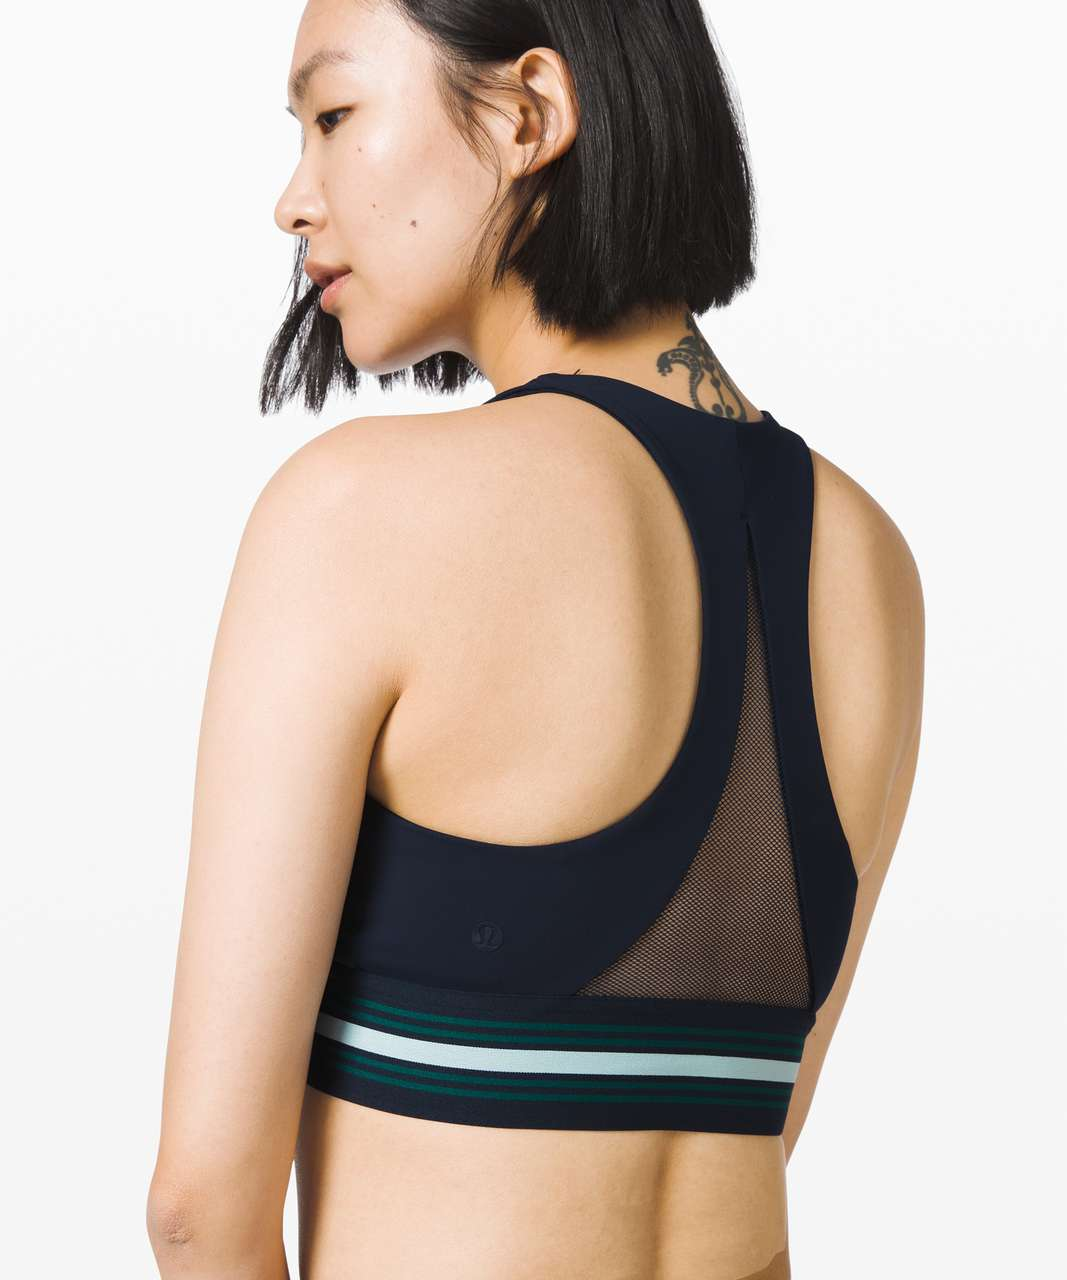 Lululemon My Element Bra *lululemon x Roksanda - True Navy / Emerald / Arctic Teal